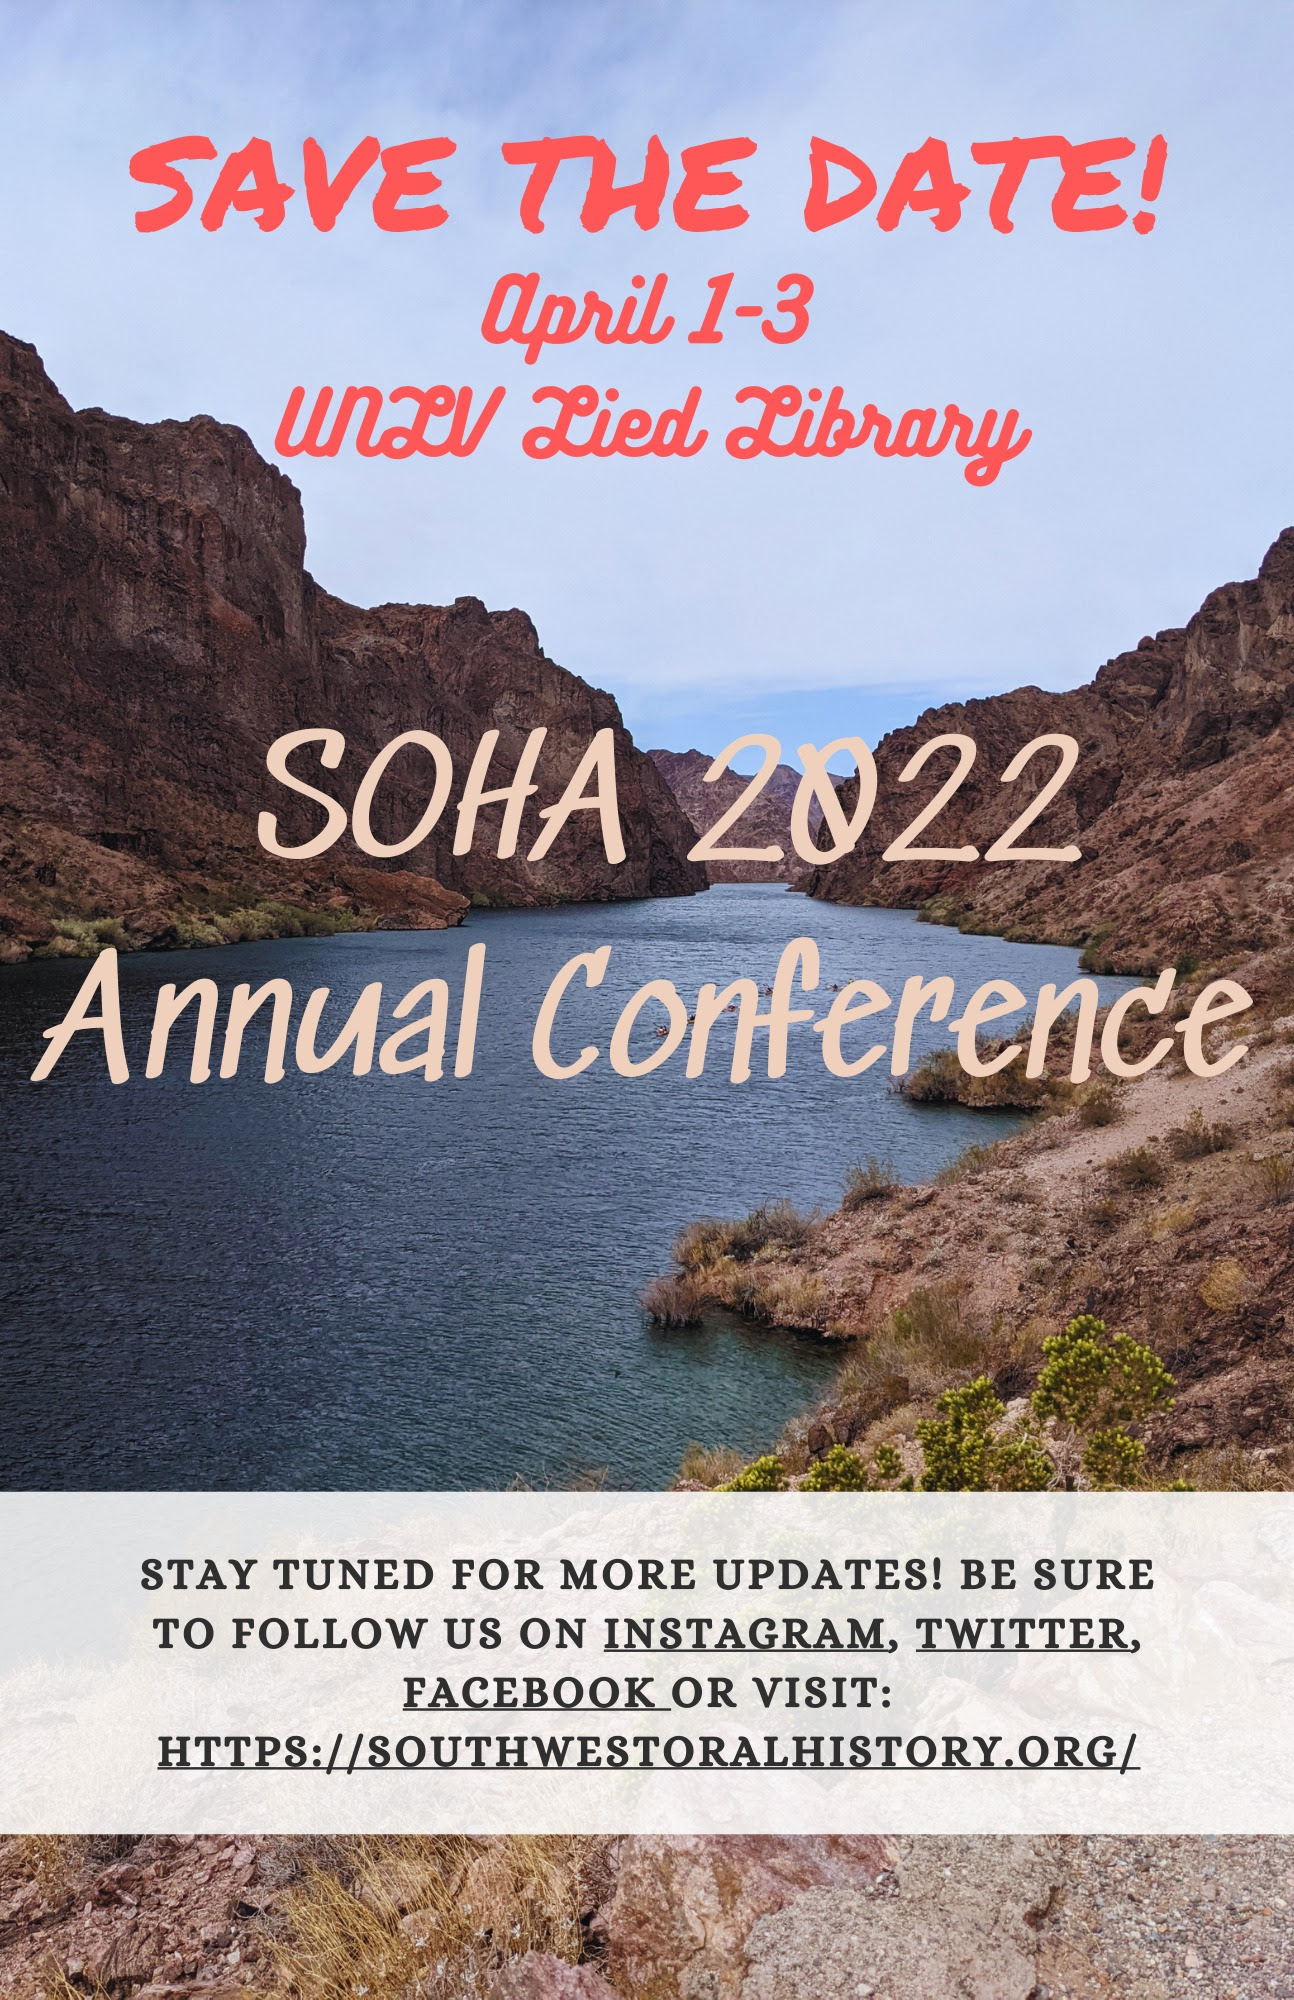 2022 Annual Conference